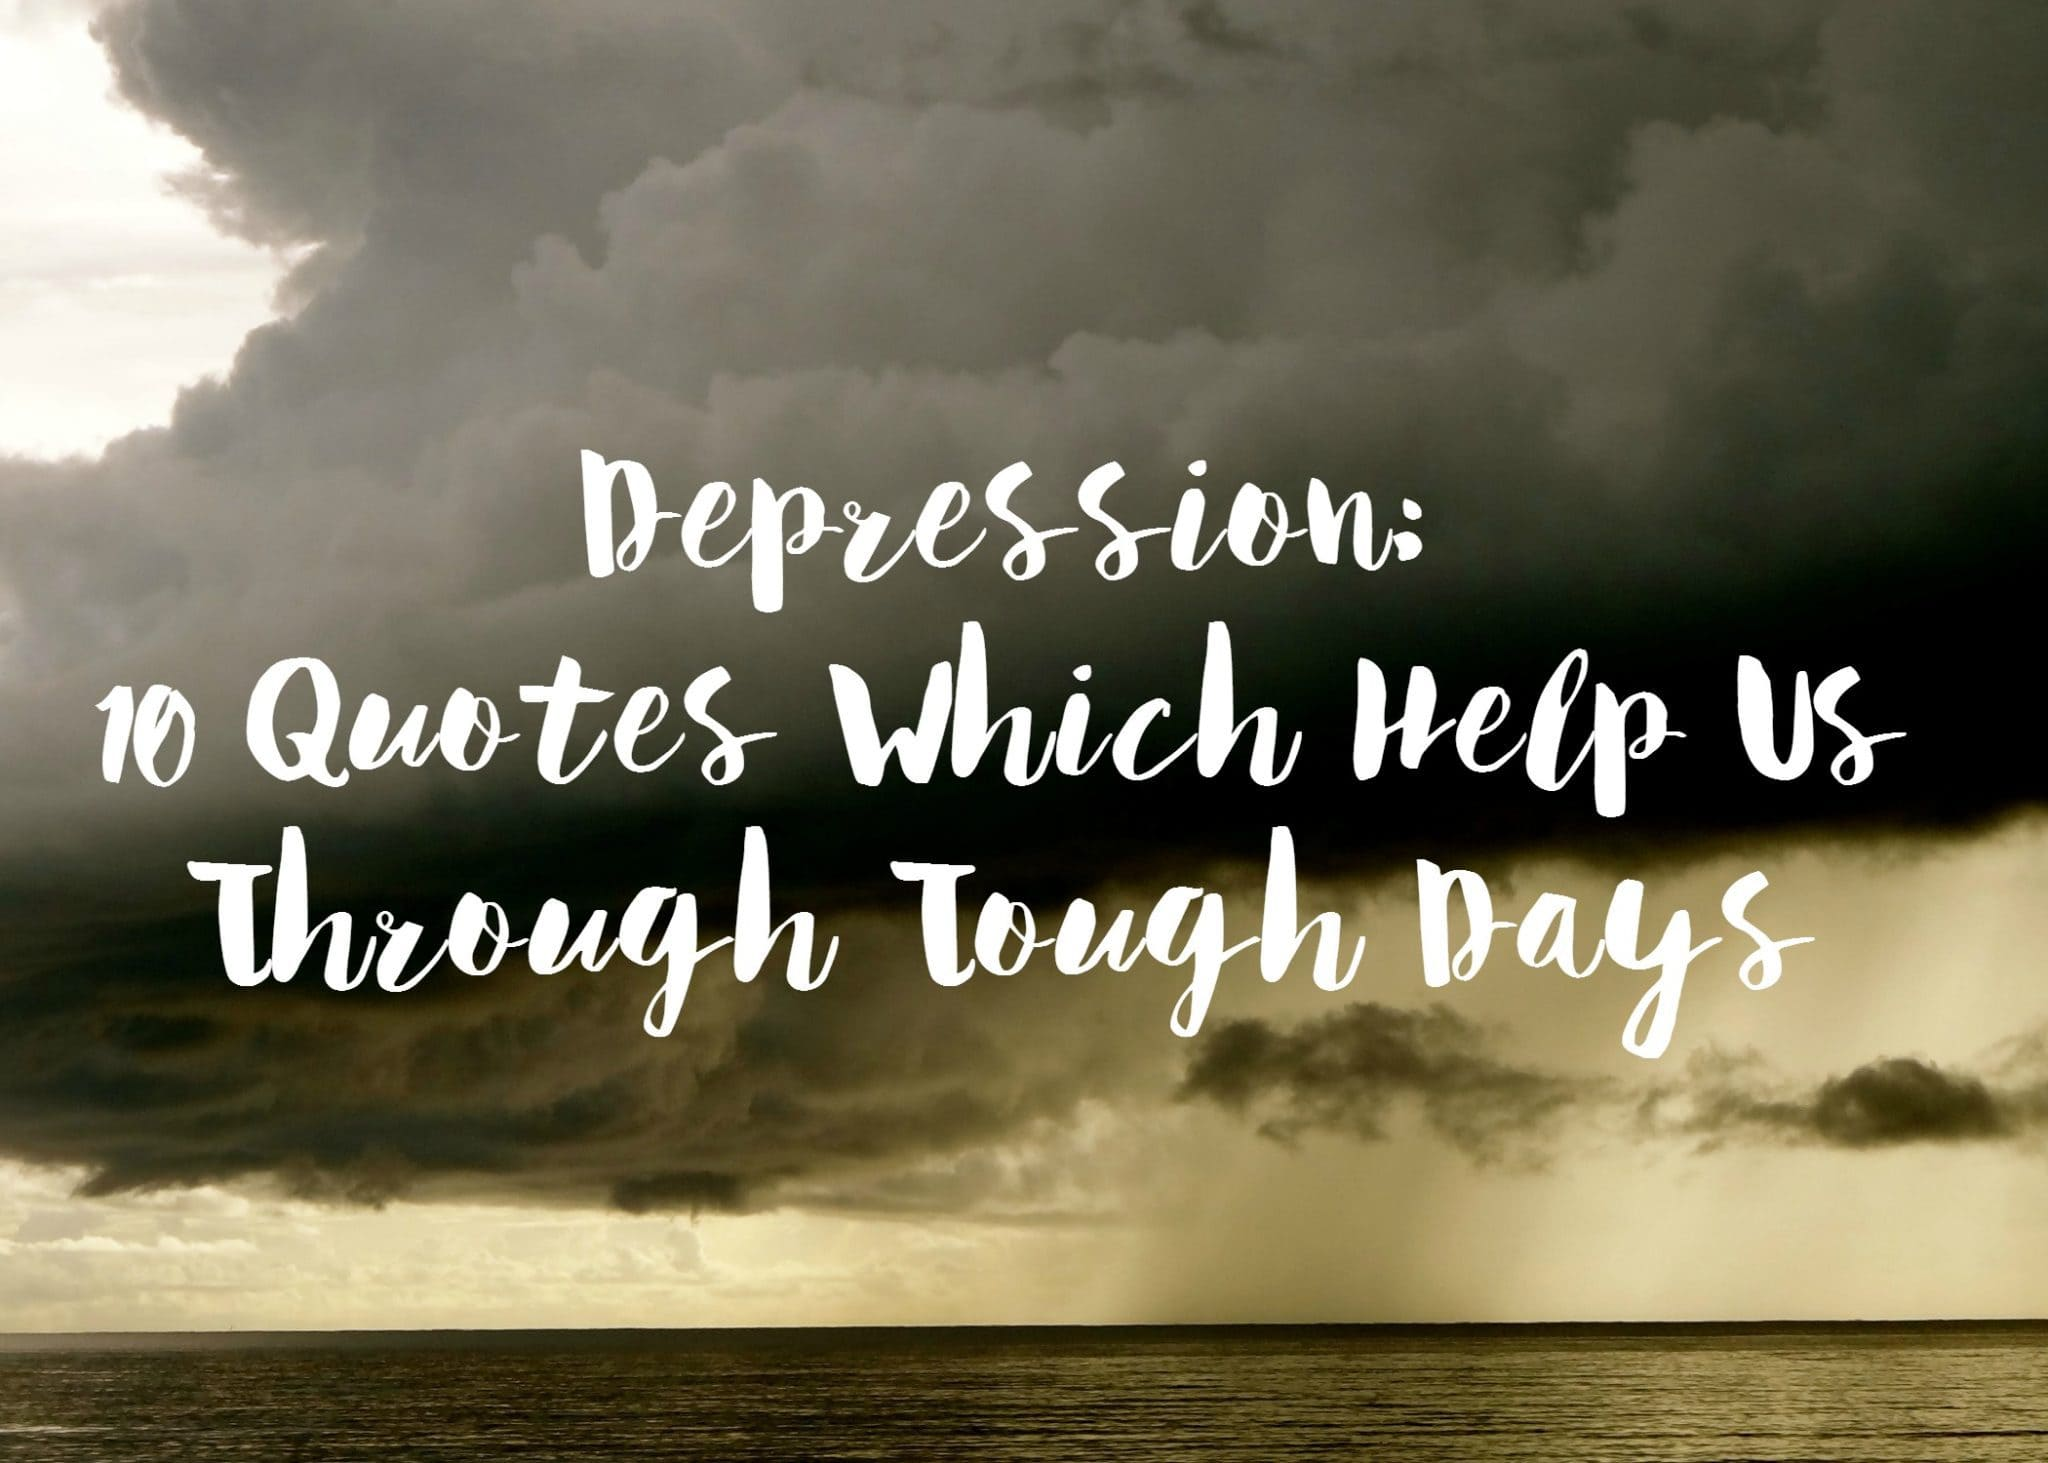 Quotes To Help Depression Prepossessing Depression 10 Quotes Which Help Us Through Tough Days